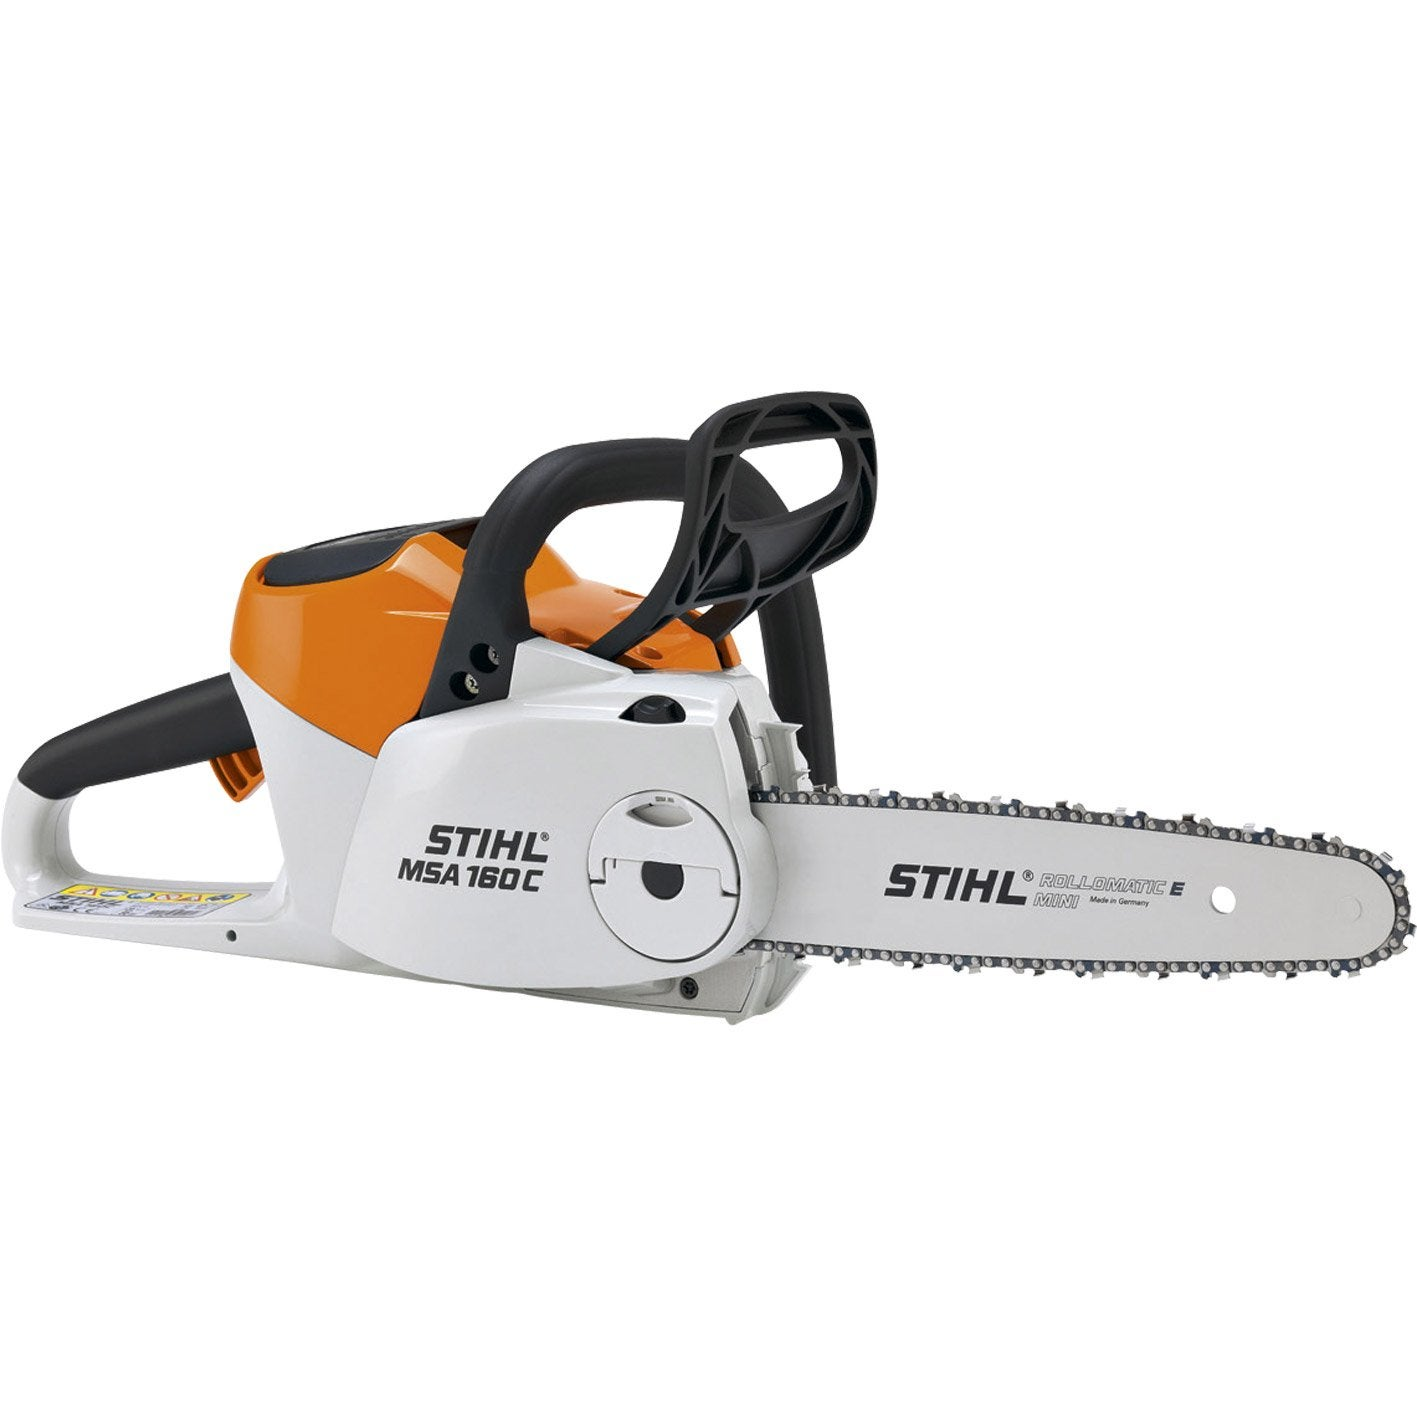 tron onneuse sur batterie stihl msa 160 c bq 36 v coupe de 30 cm leroy merlin. Black Bedroom Furniture Sets. Home Design Ideas